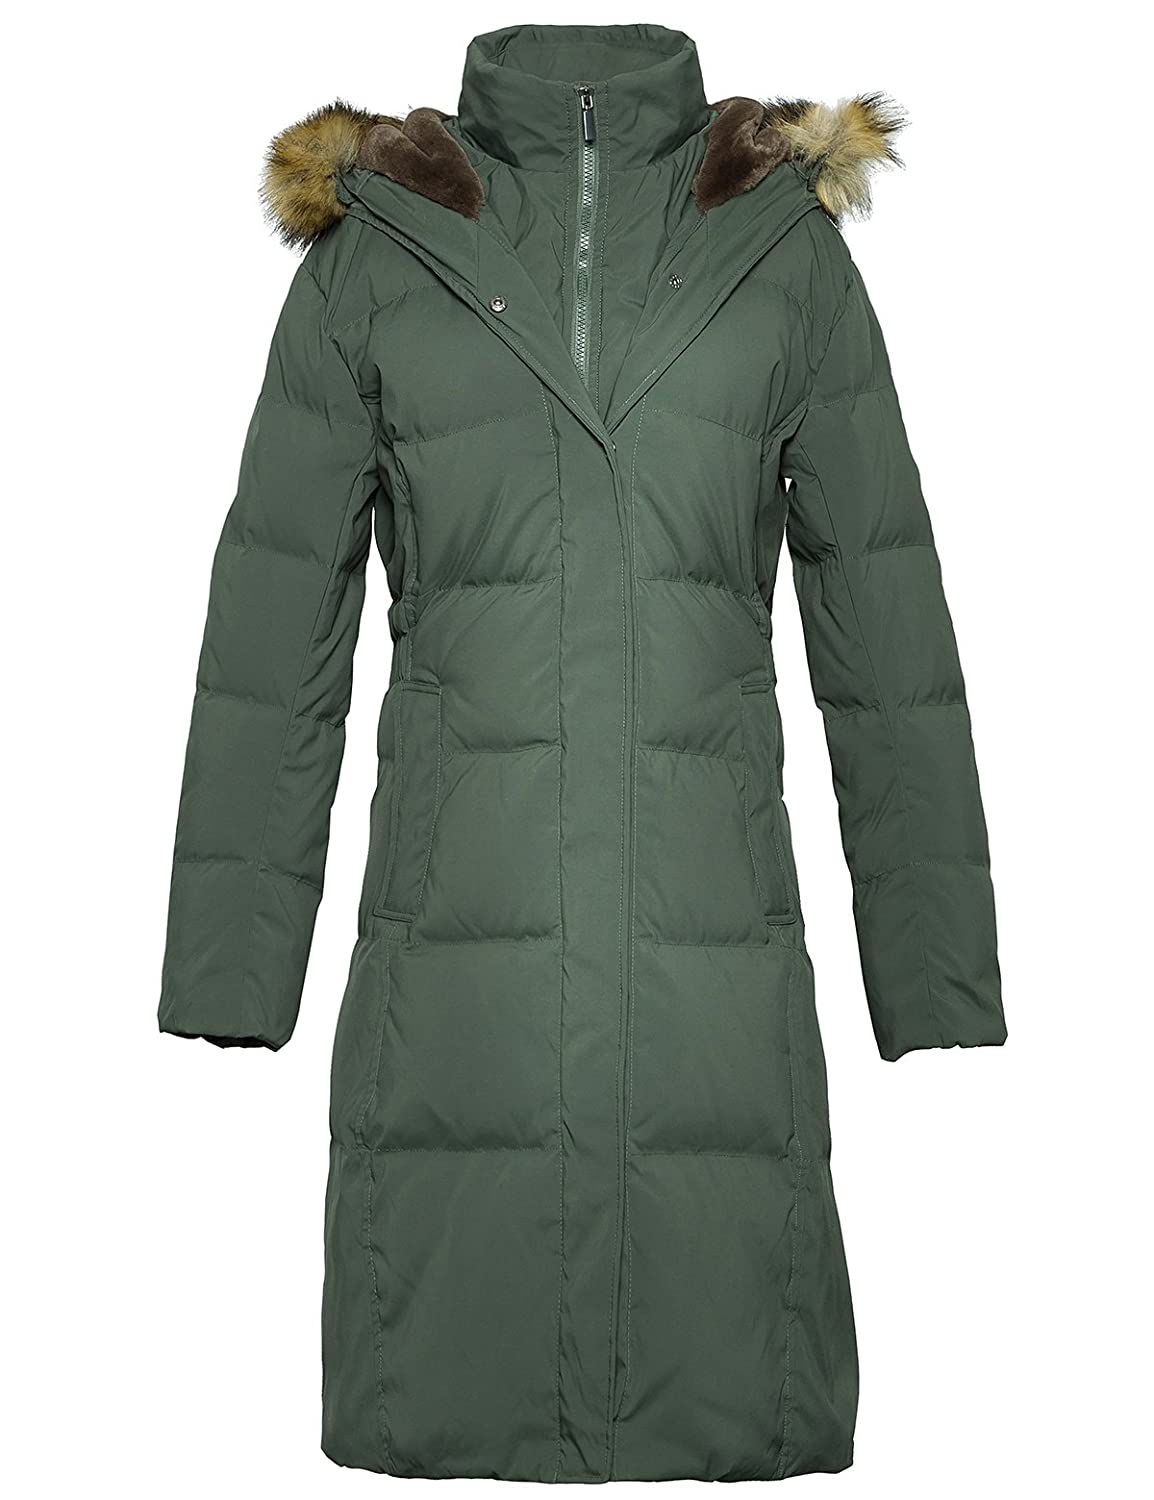 16504d2bb99 Amazon.com  ADOMI Women s Long Hooded Thickened Down Coat with Fur Trim   Clothing